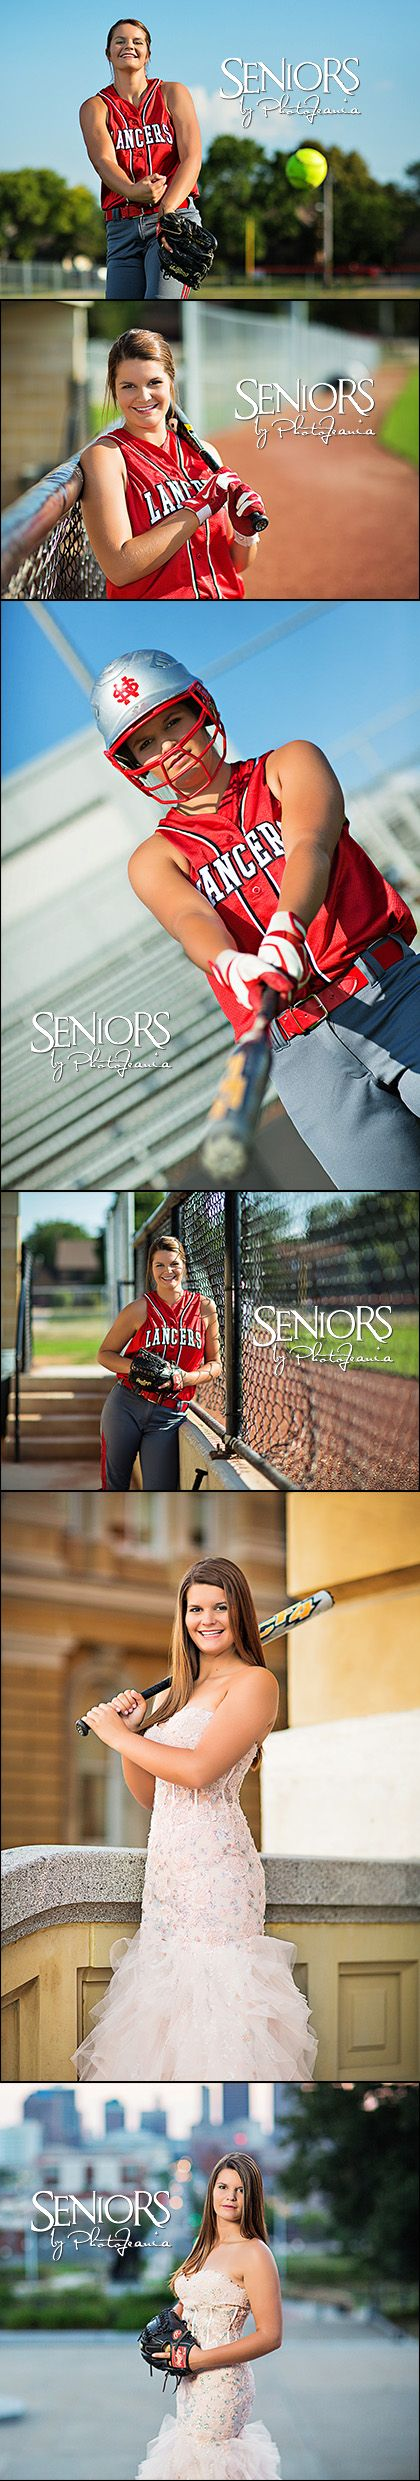 Pitch Count: Softball senior picture ideas for pitchers and fashionistas #softballseniorpictureideas #softballseniorpictures #seniorsbyphotojeania